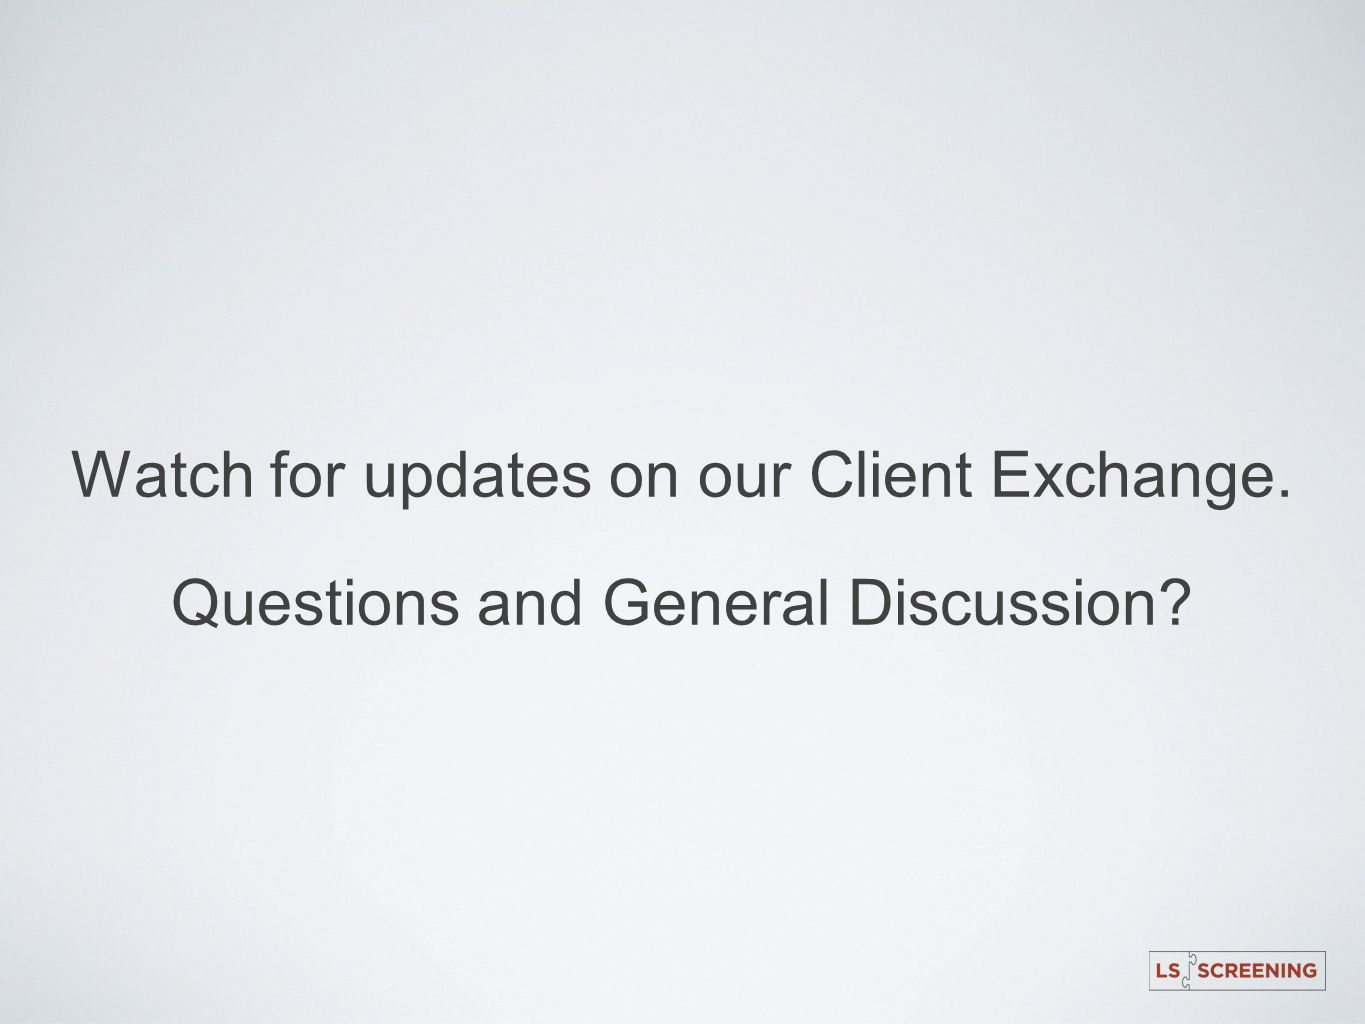 Watch for updates on our Client Exchange.